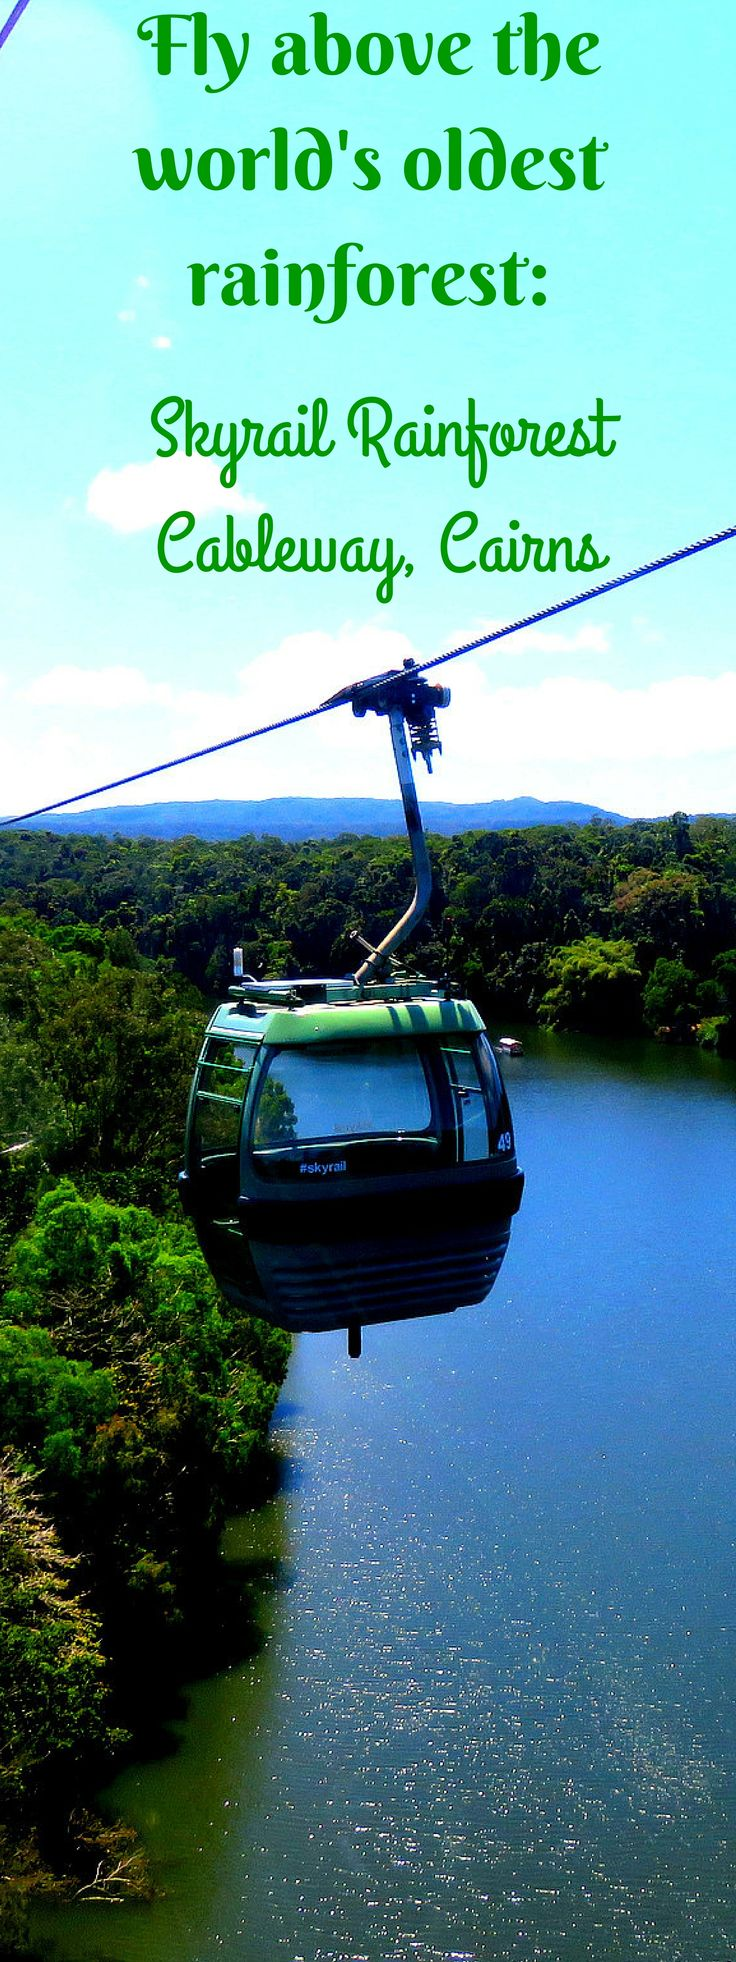 Skyrail Rainforest Cableway, Cairns - a journey above one of the world's oldest rainforests.